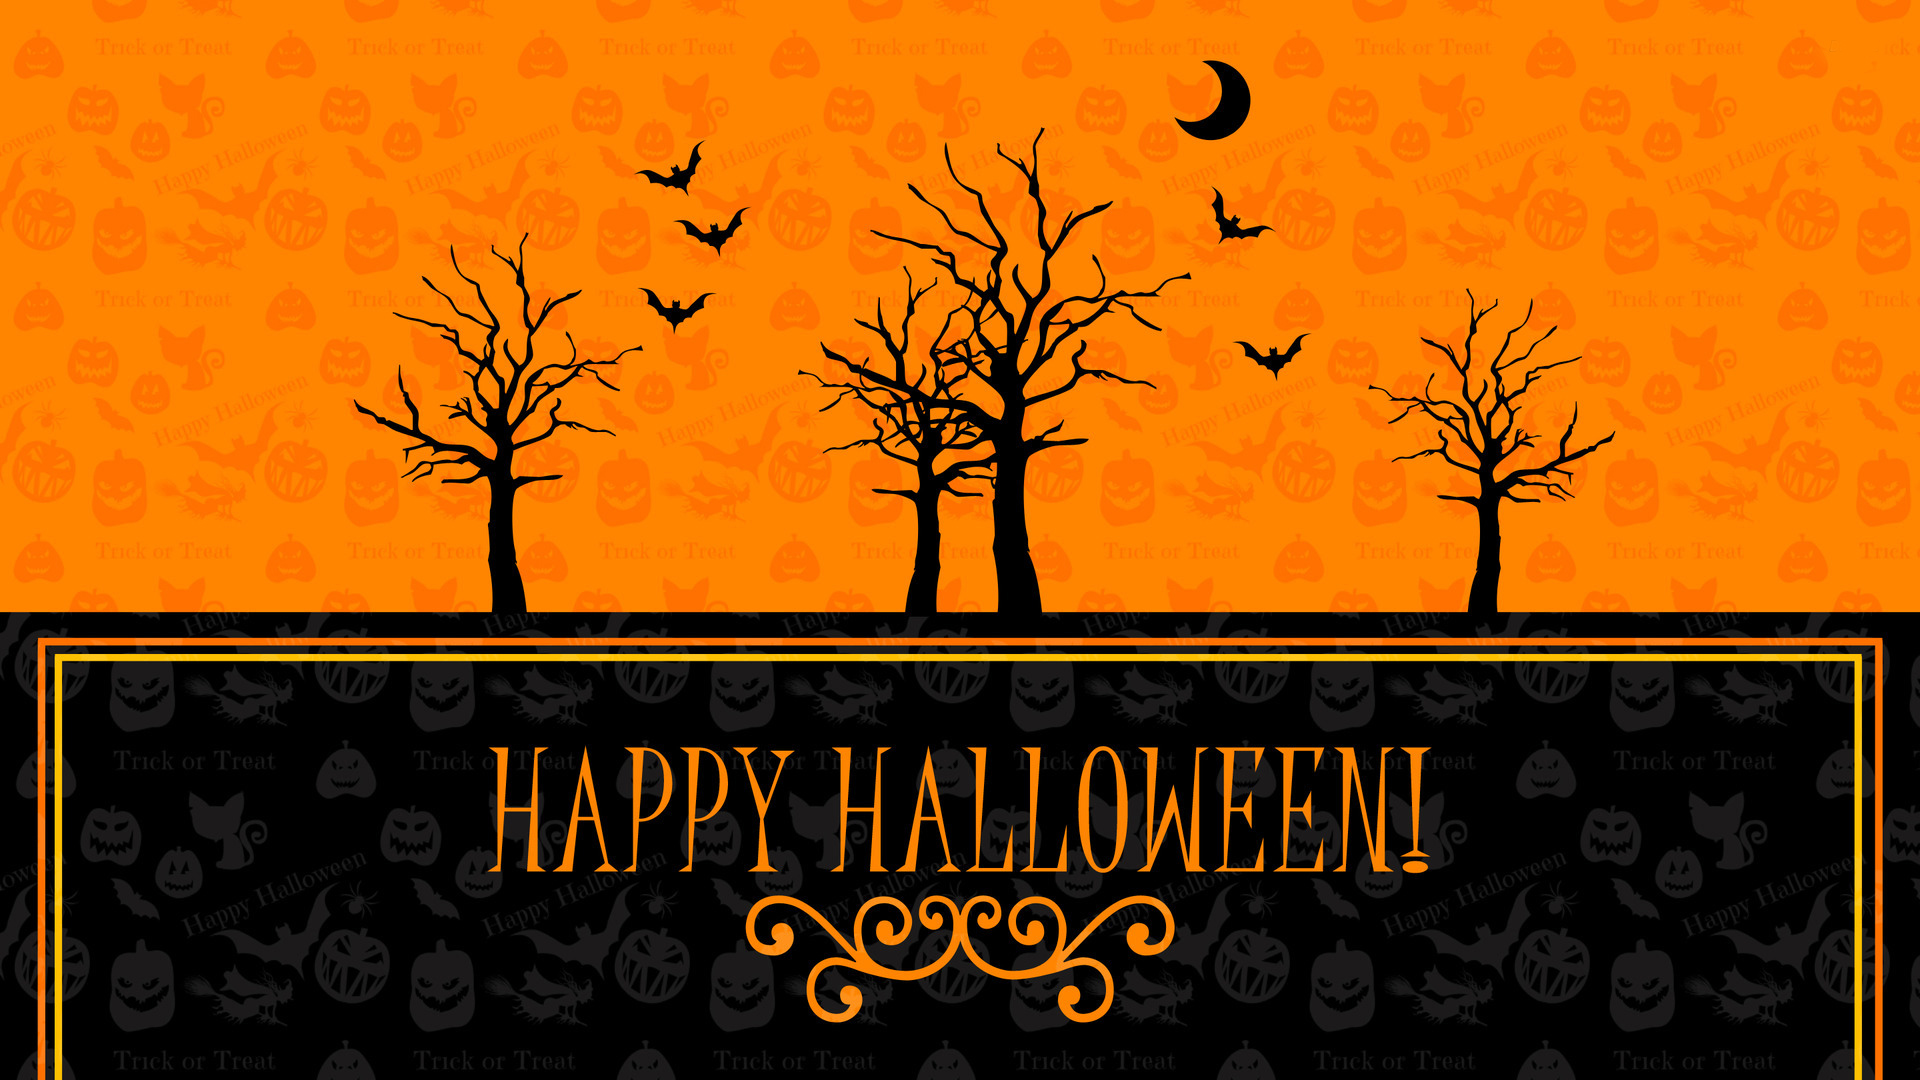 Happy Halloween Wallpapers 1920x1080